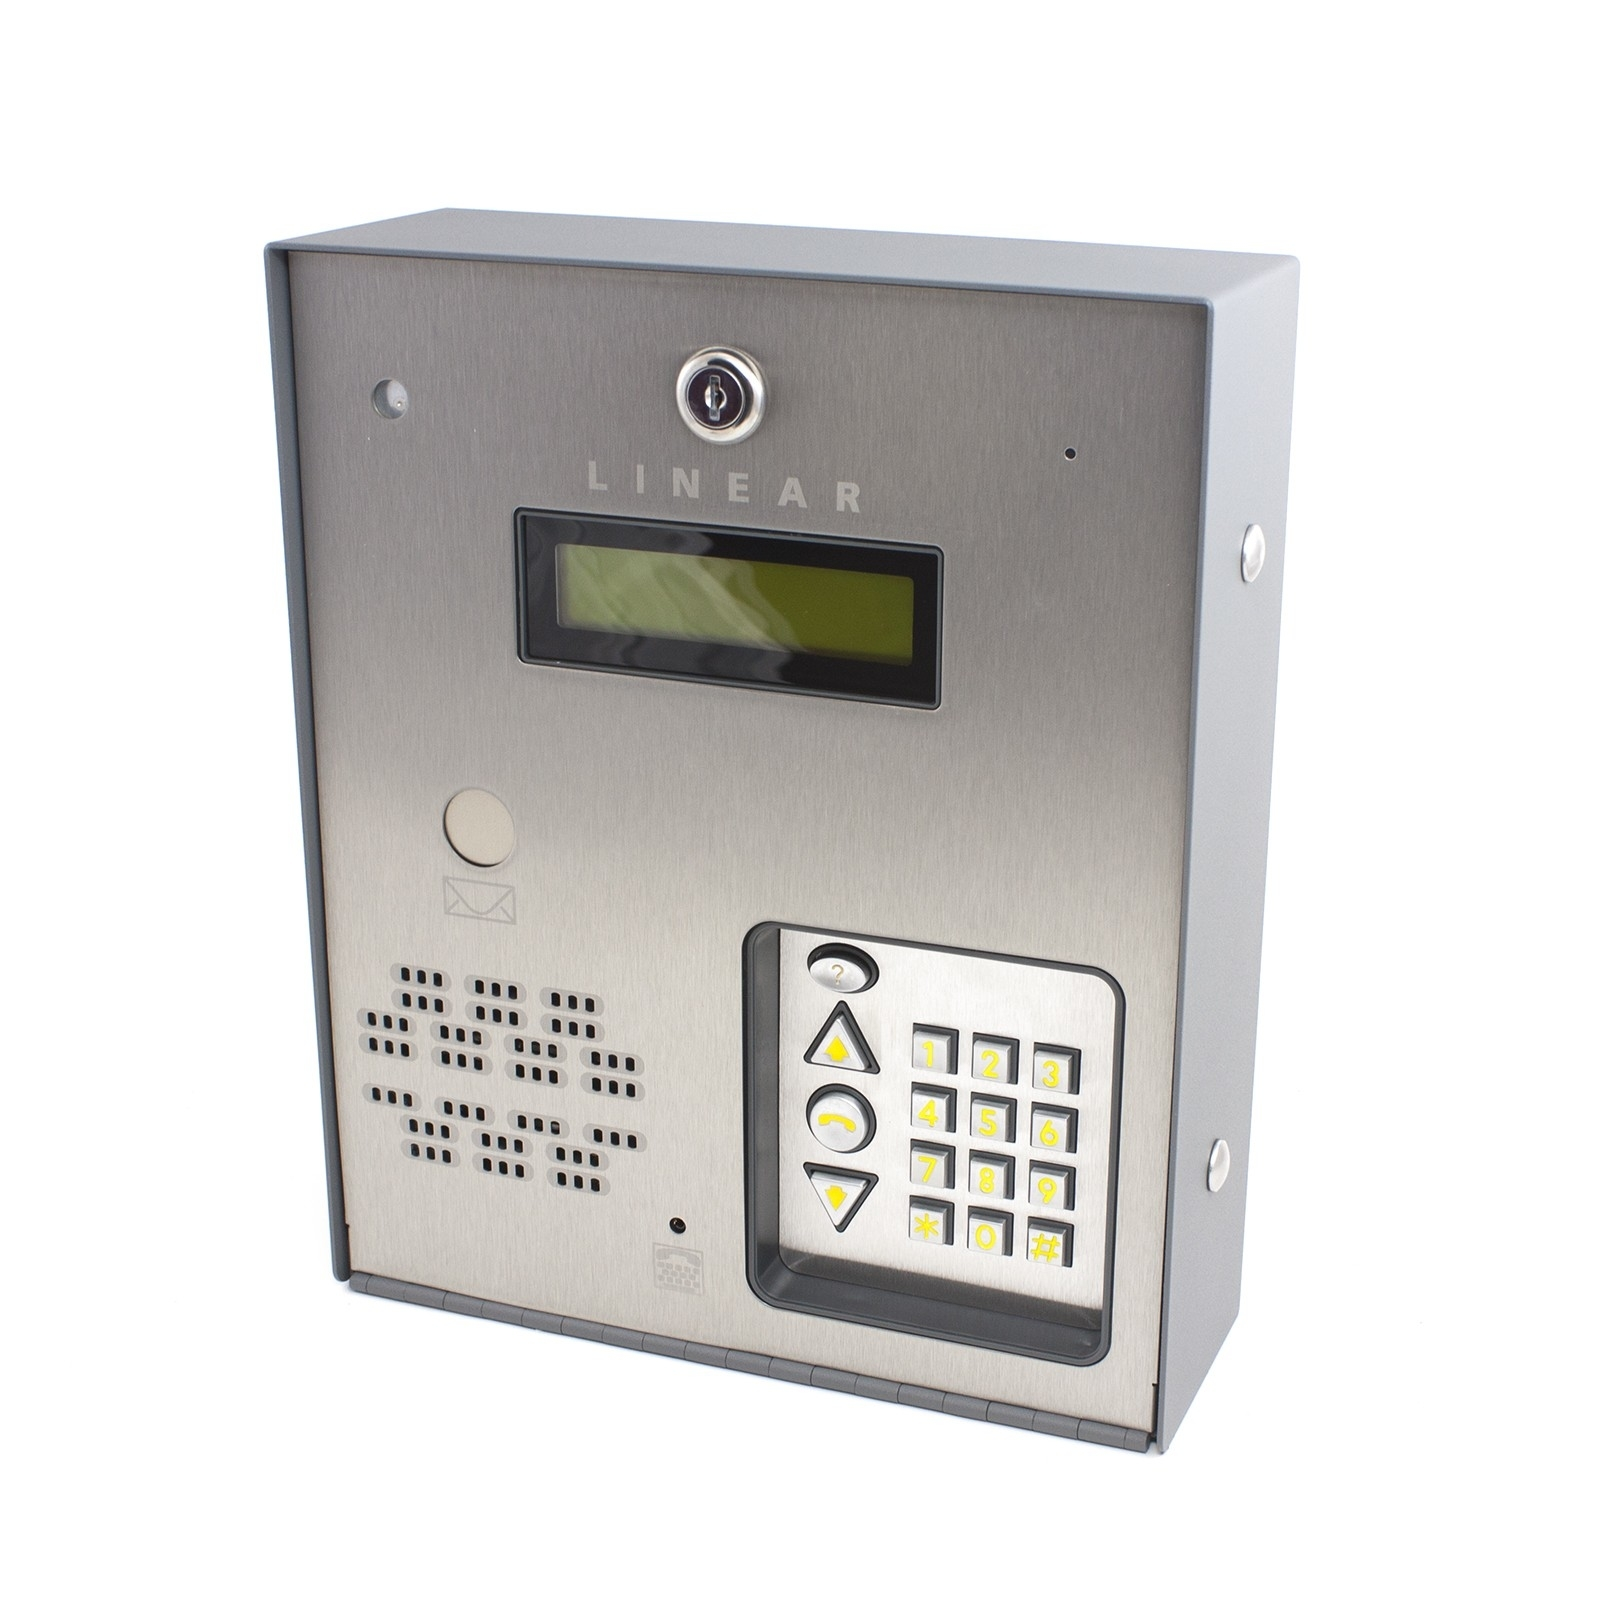 The Linear AE-100 Commercial Telephone Entry System is designed for use as a primary access control  Best Security Okanagan Kelowna (250)826-8395